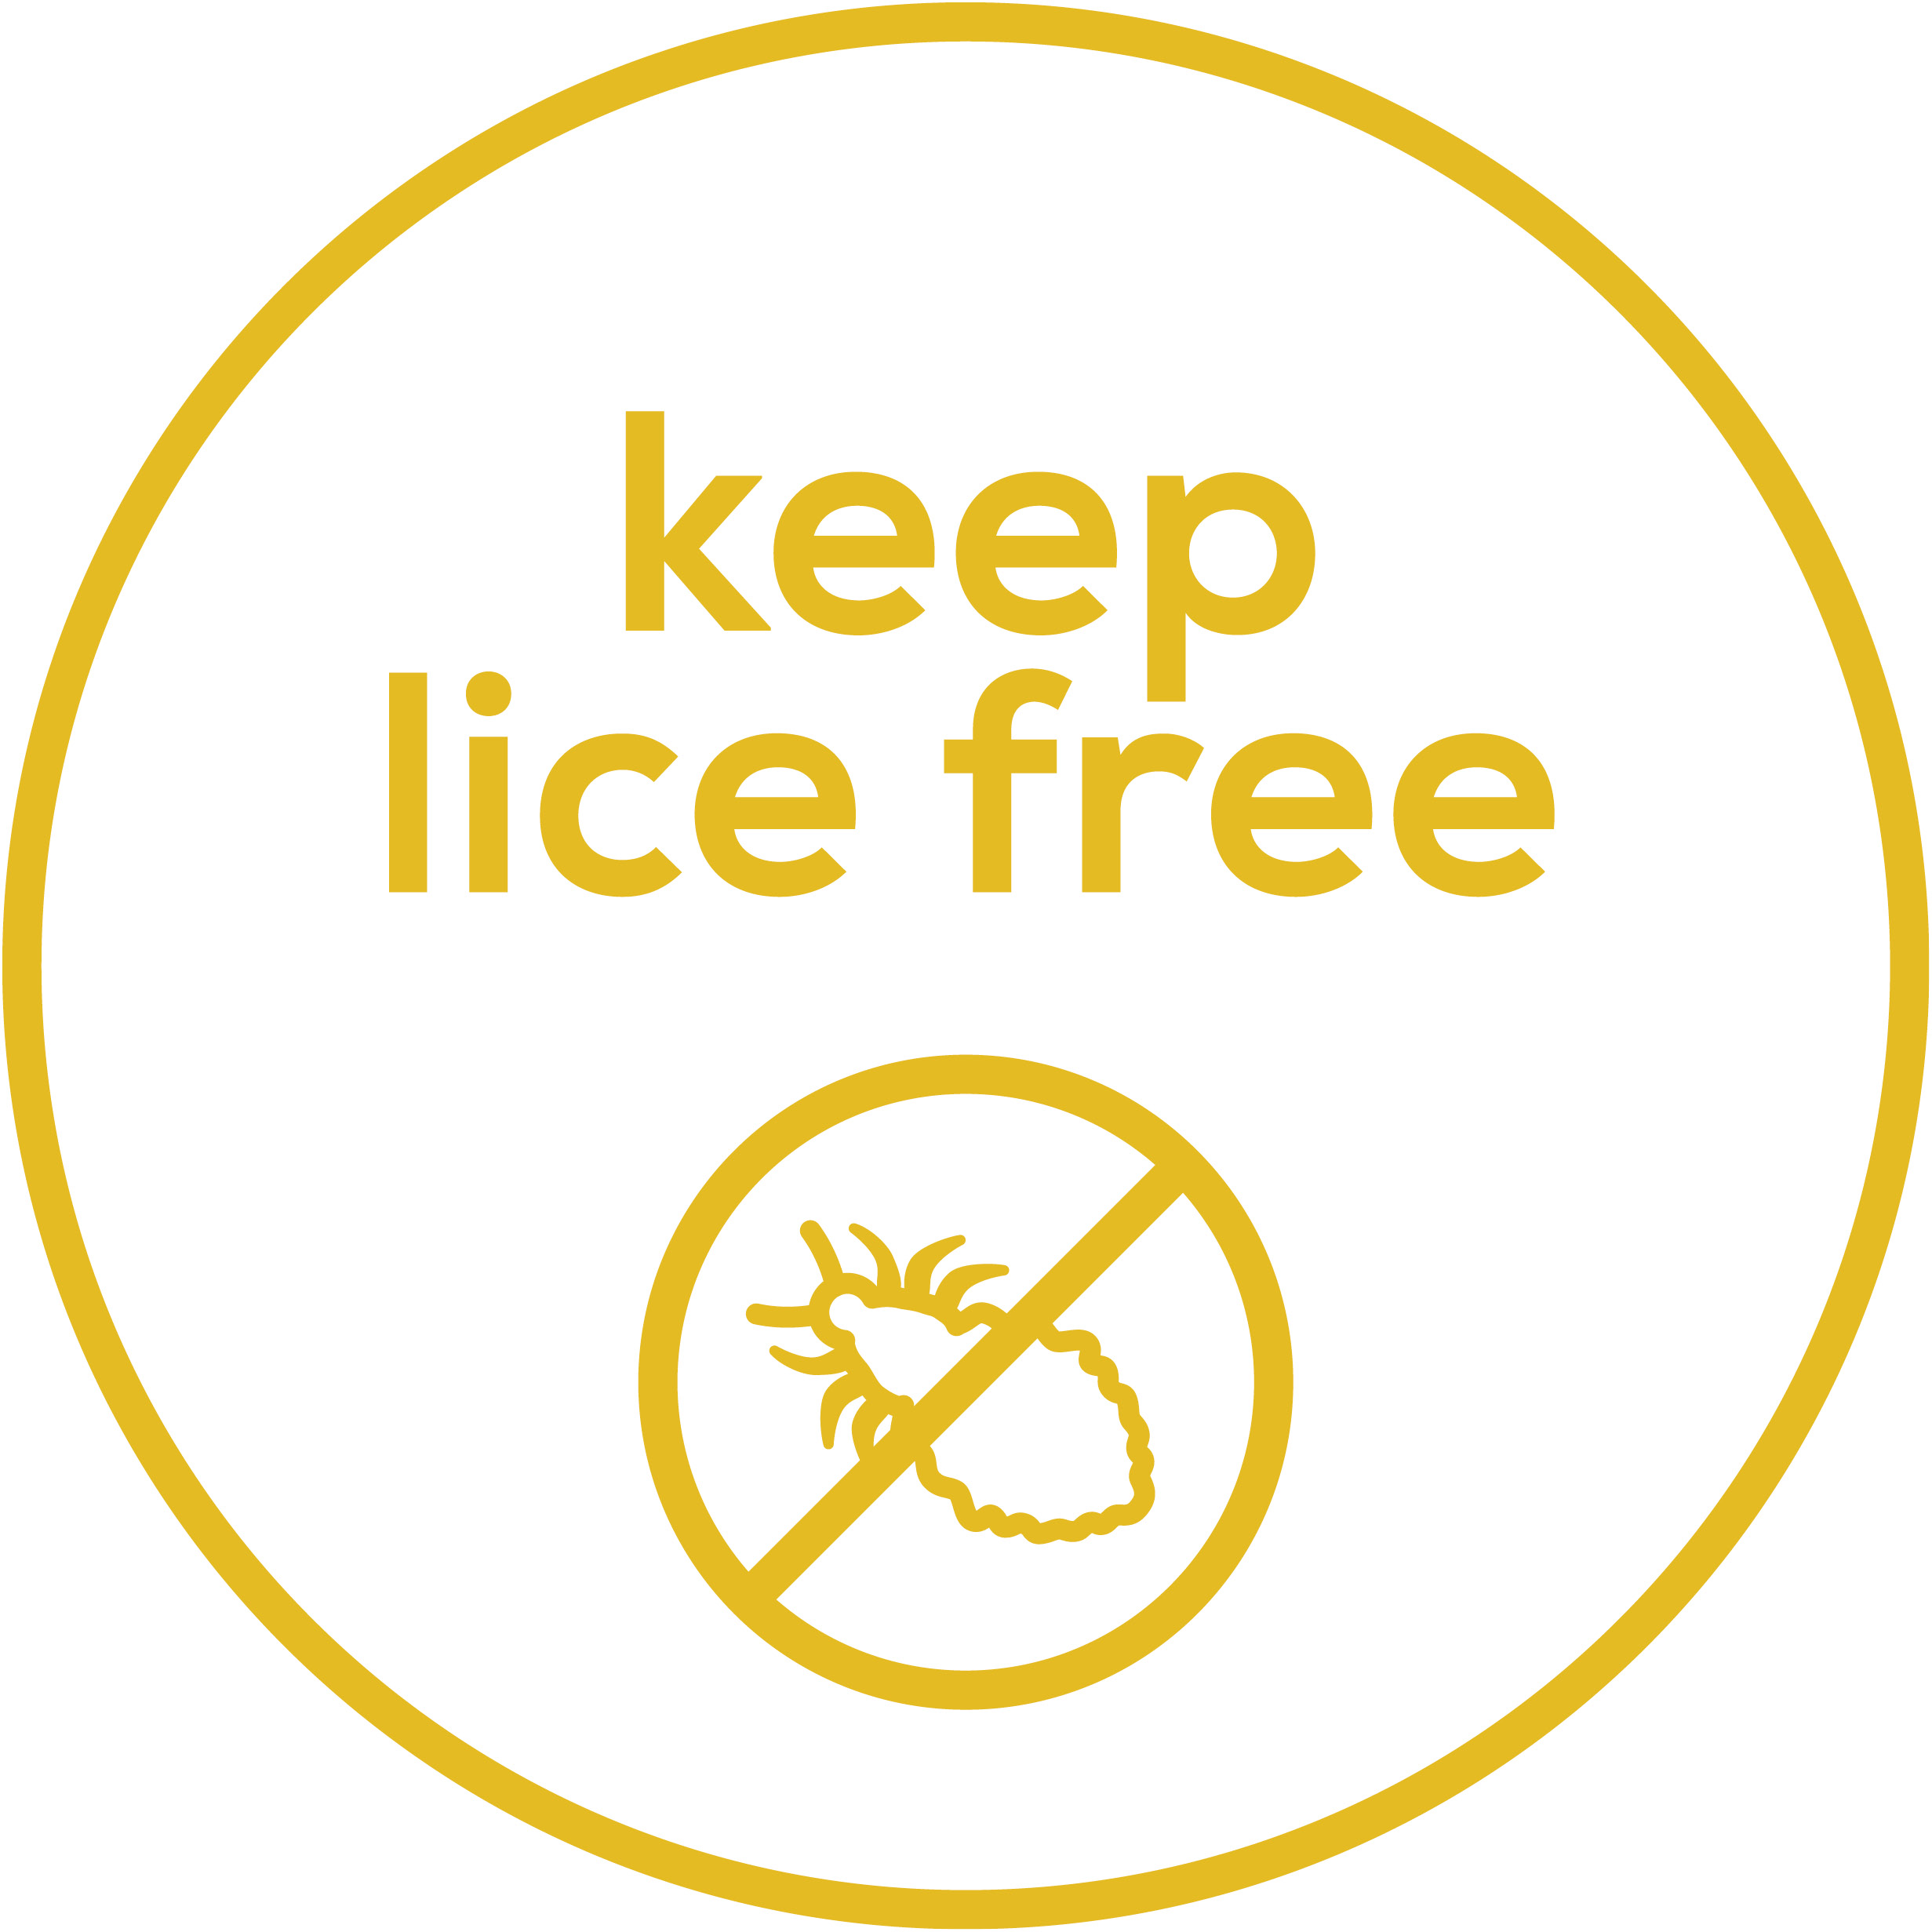 Lice free  Rids the scalp of hair lice and their nits